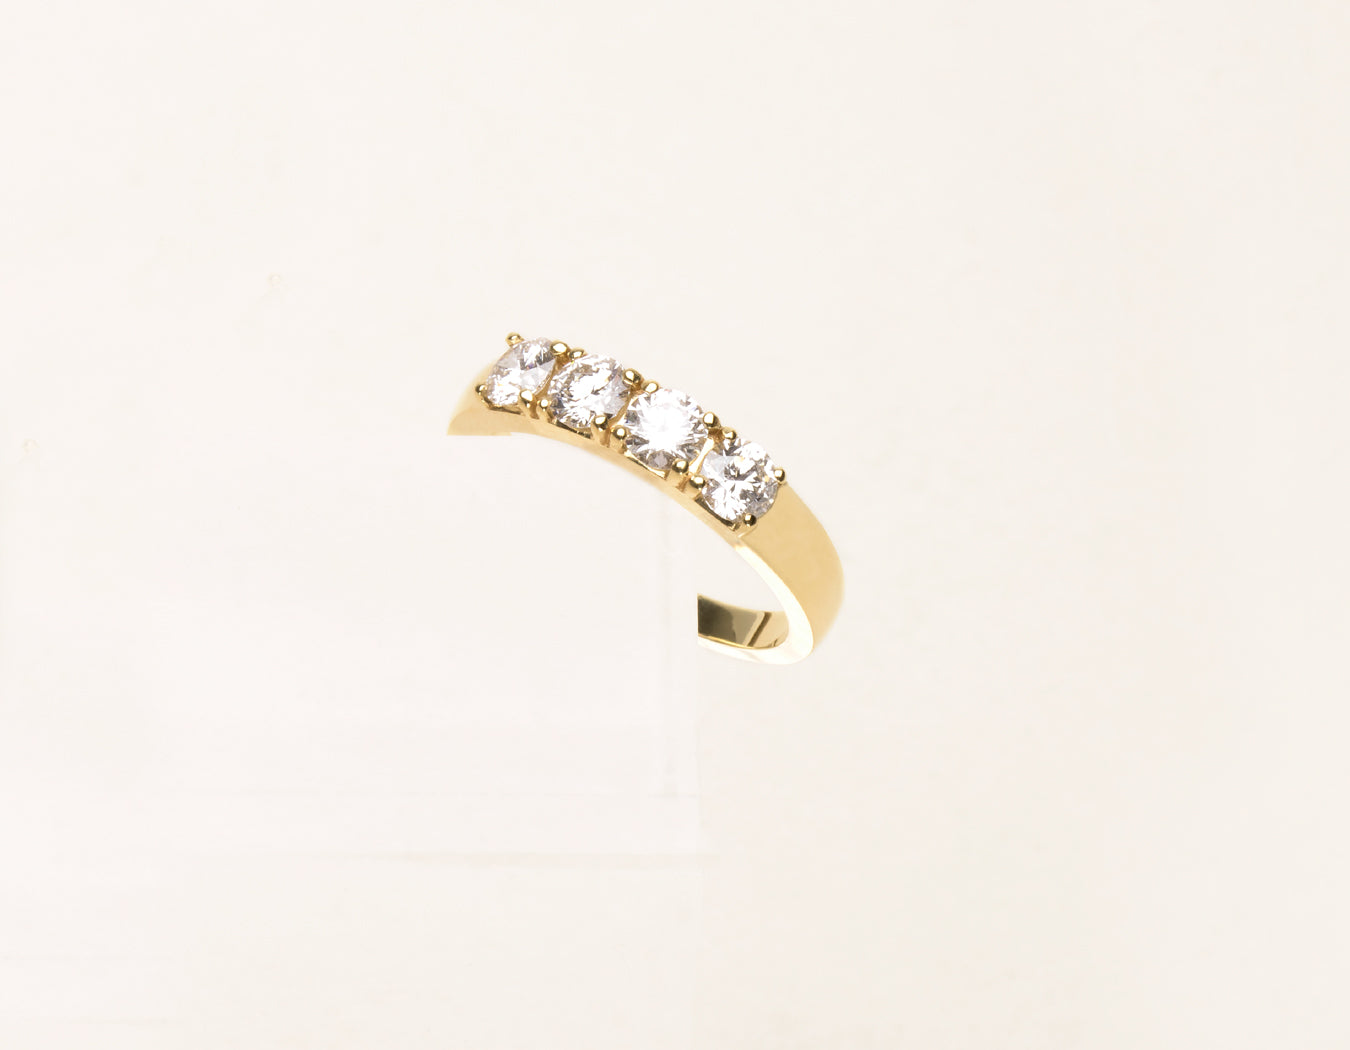 Vrai & Oro Classic Round Brilliant Cut Diamond Tetrad Ring in 14k solid yellow gold